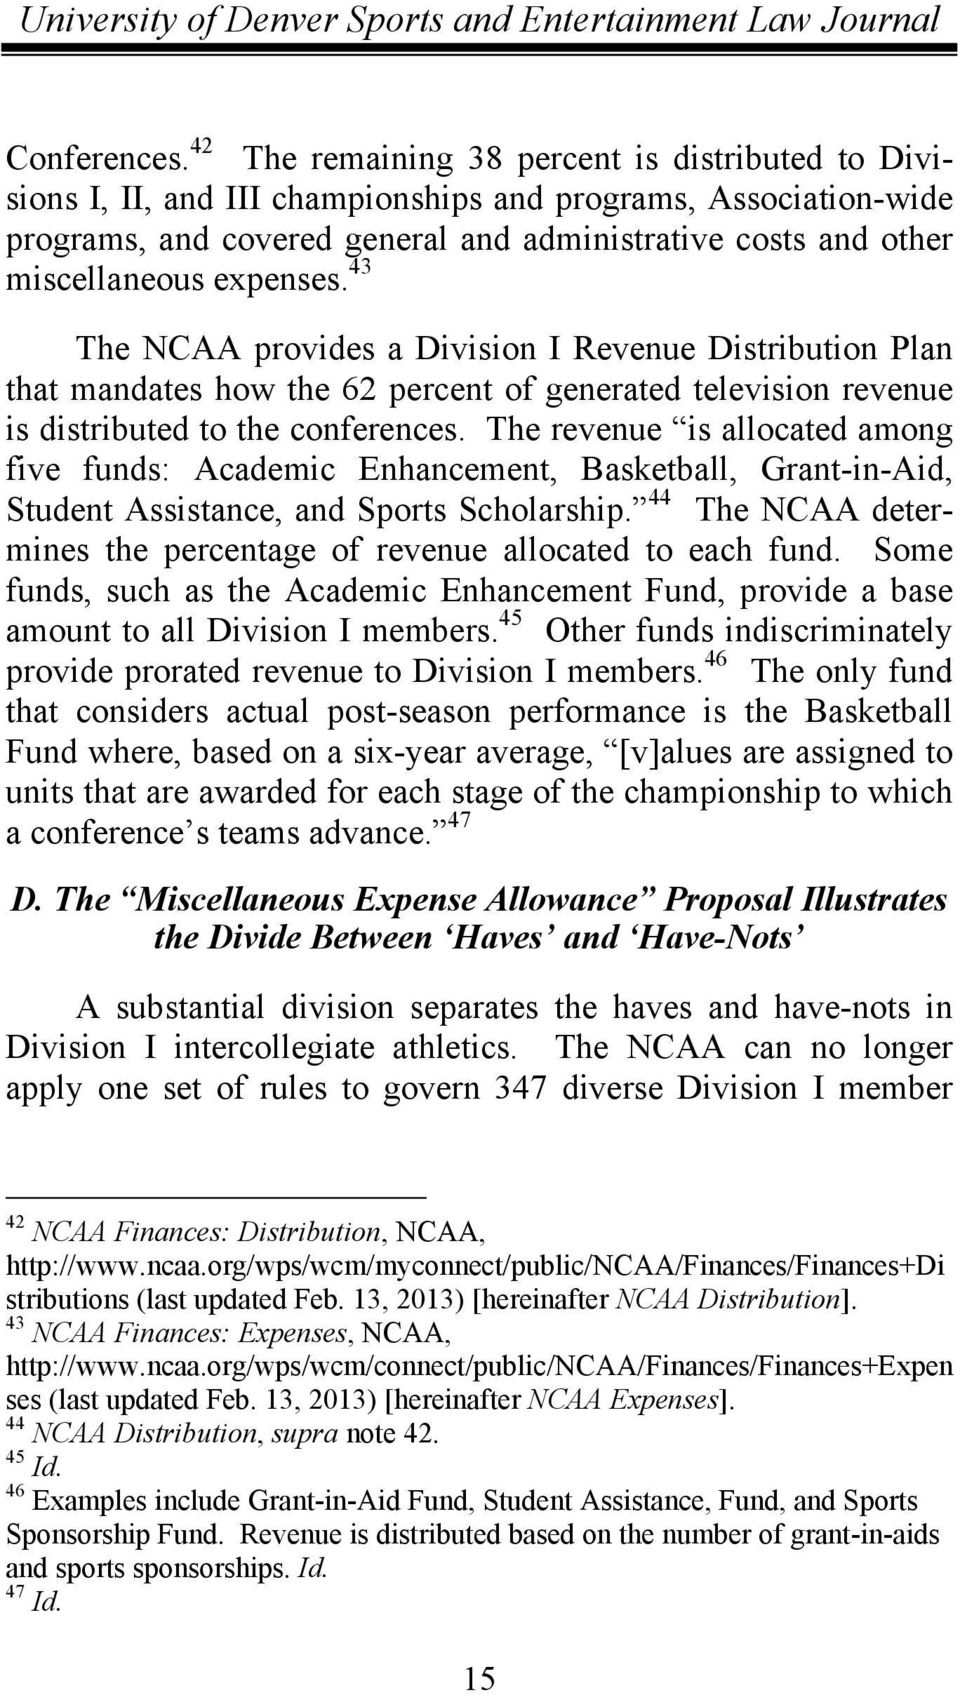 expenses. 43 The NCAA provides a Division I Revenue Distribution Plan that mandates how the 62 percent of generated television revenue is distributed to the conferences.